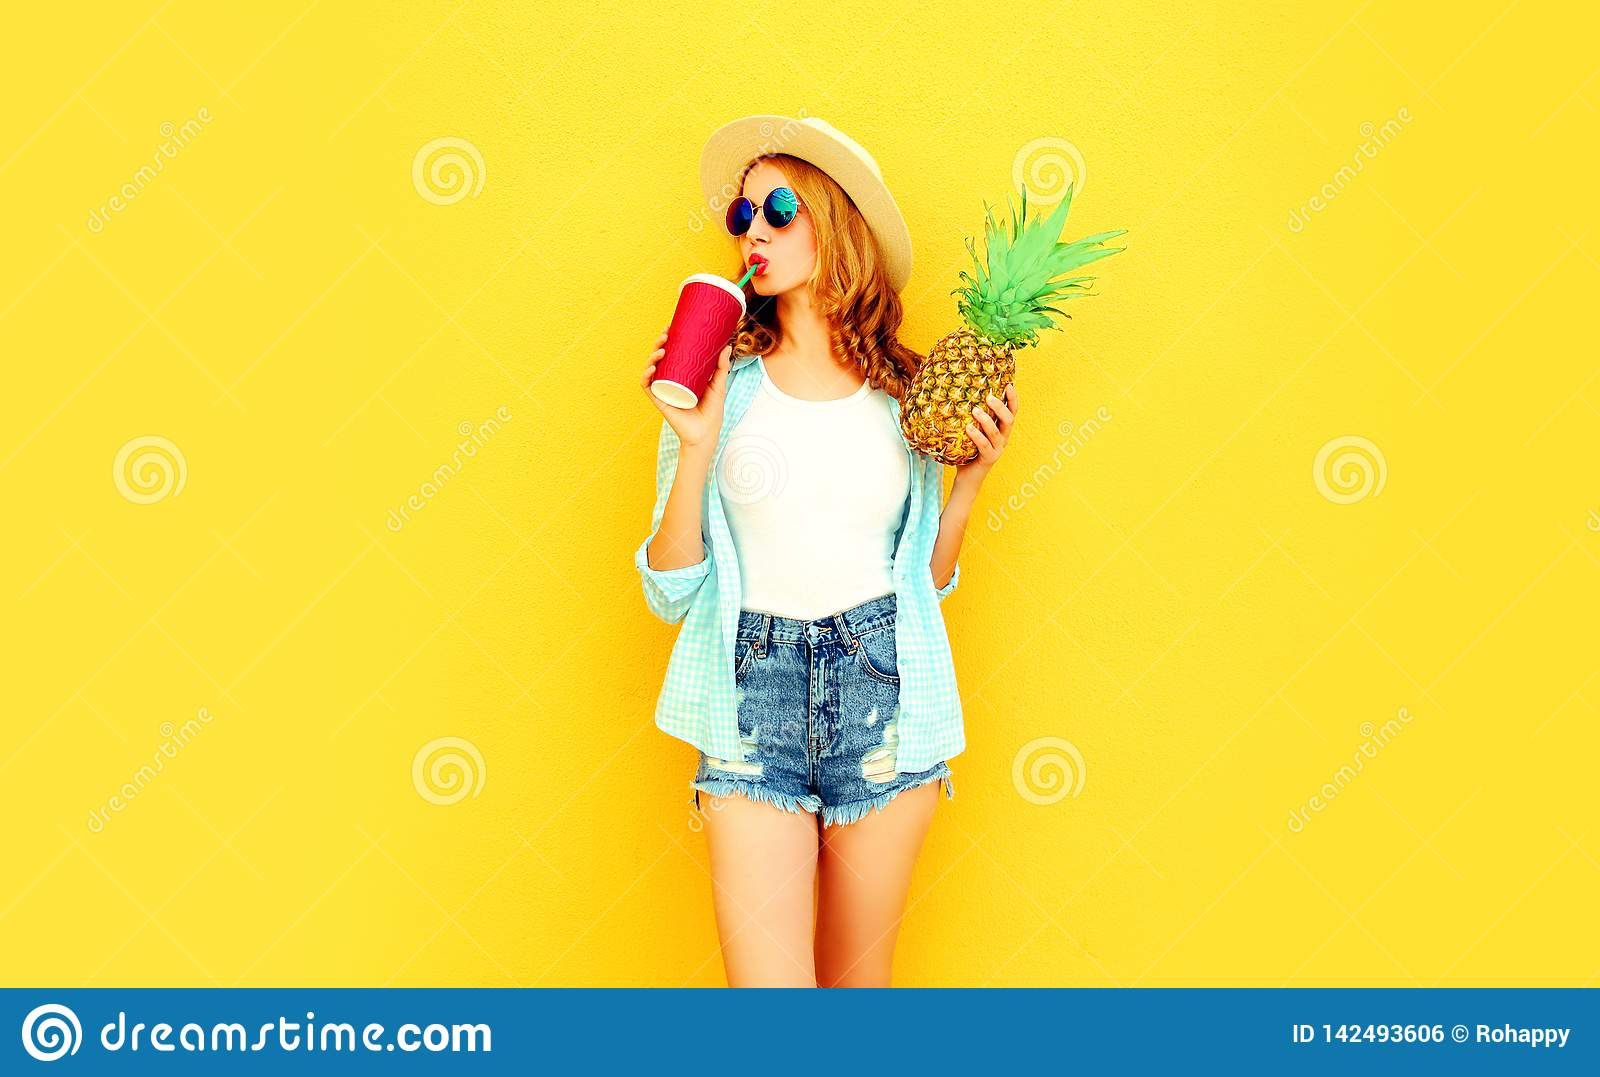 pretty young woman drinking juice, holding pineapple in summer straw hat, sunglasses, shorts on colorful yellow